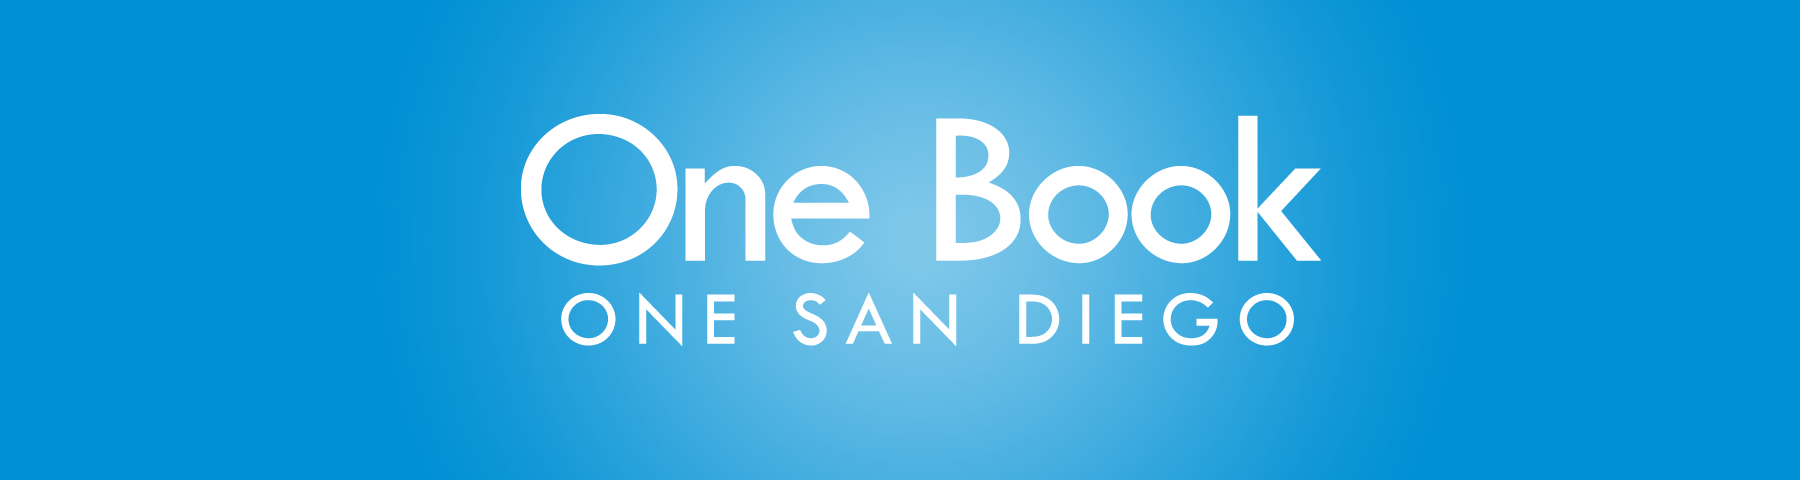 One Book Blue Banner